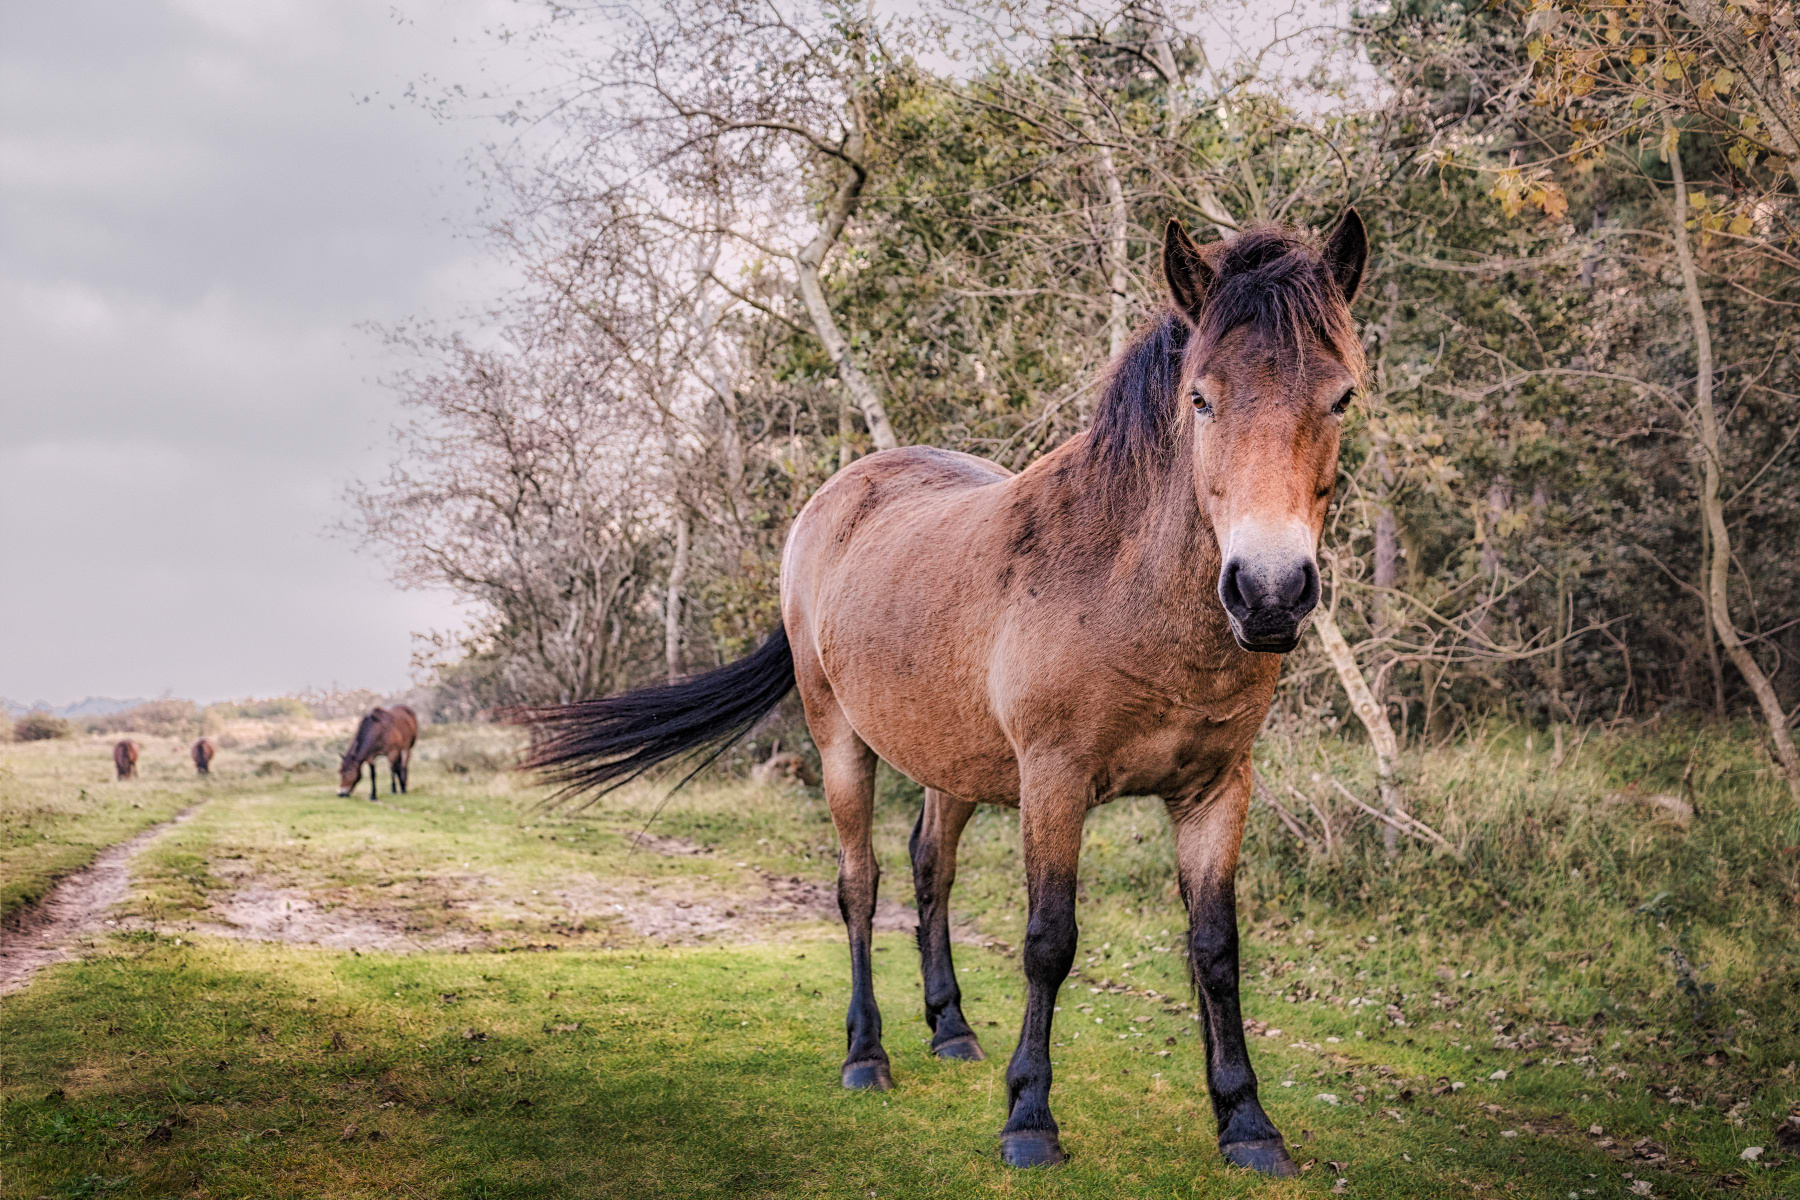 Encounter with Pony on a Path